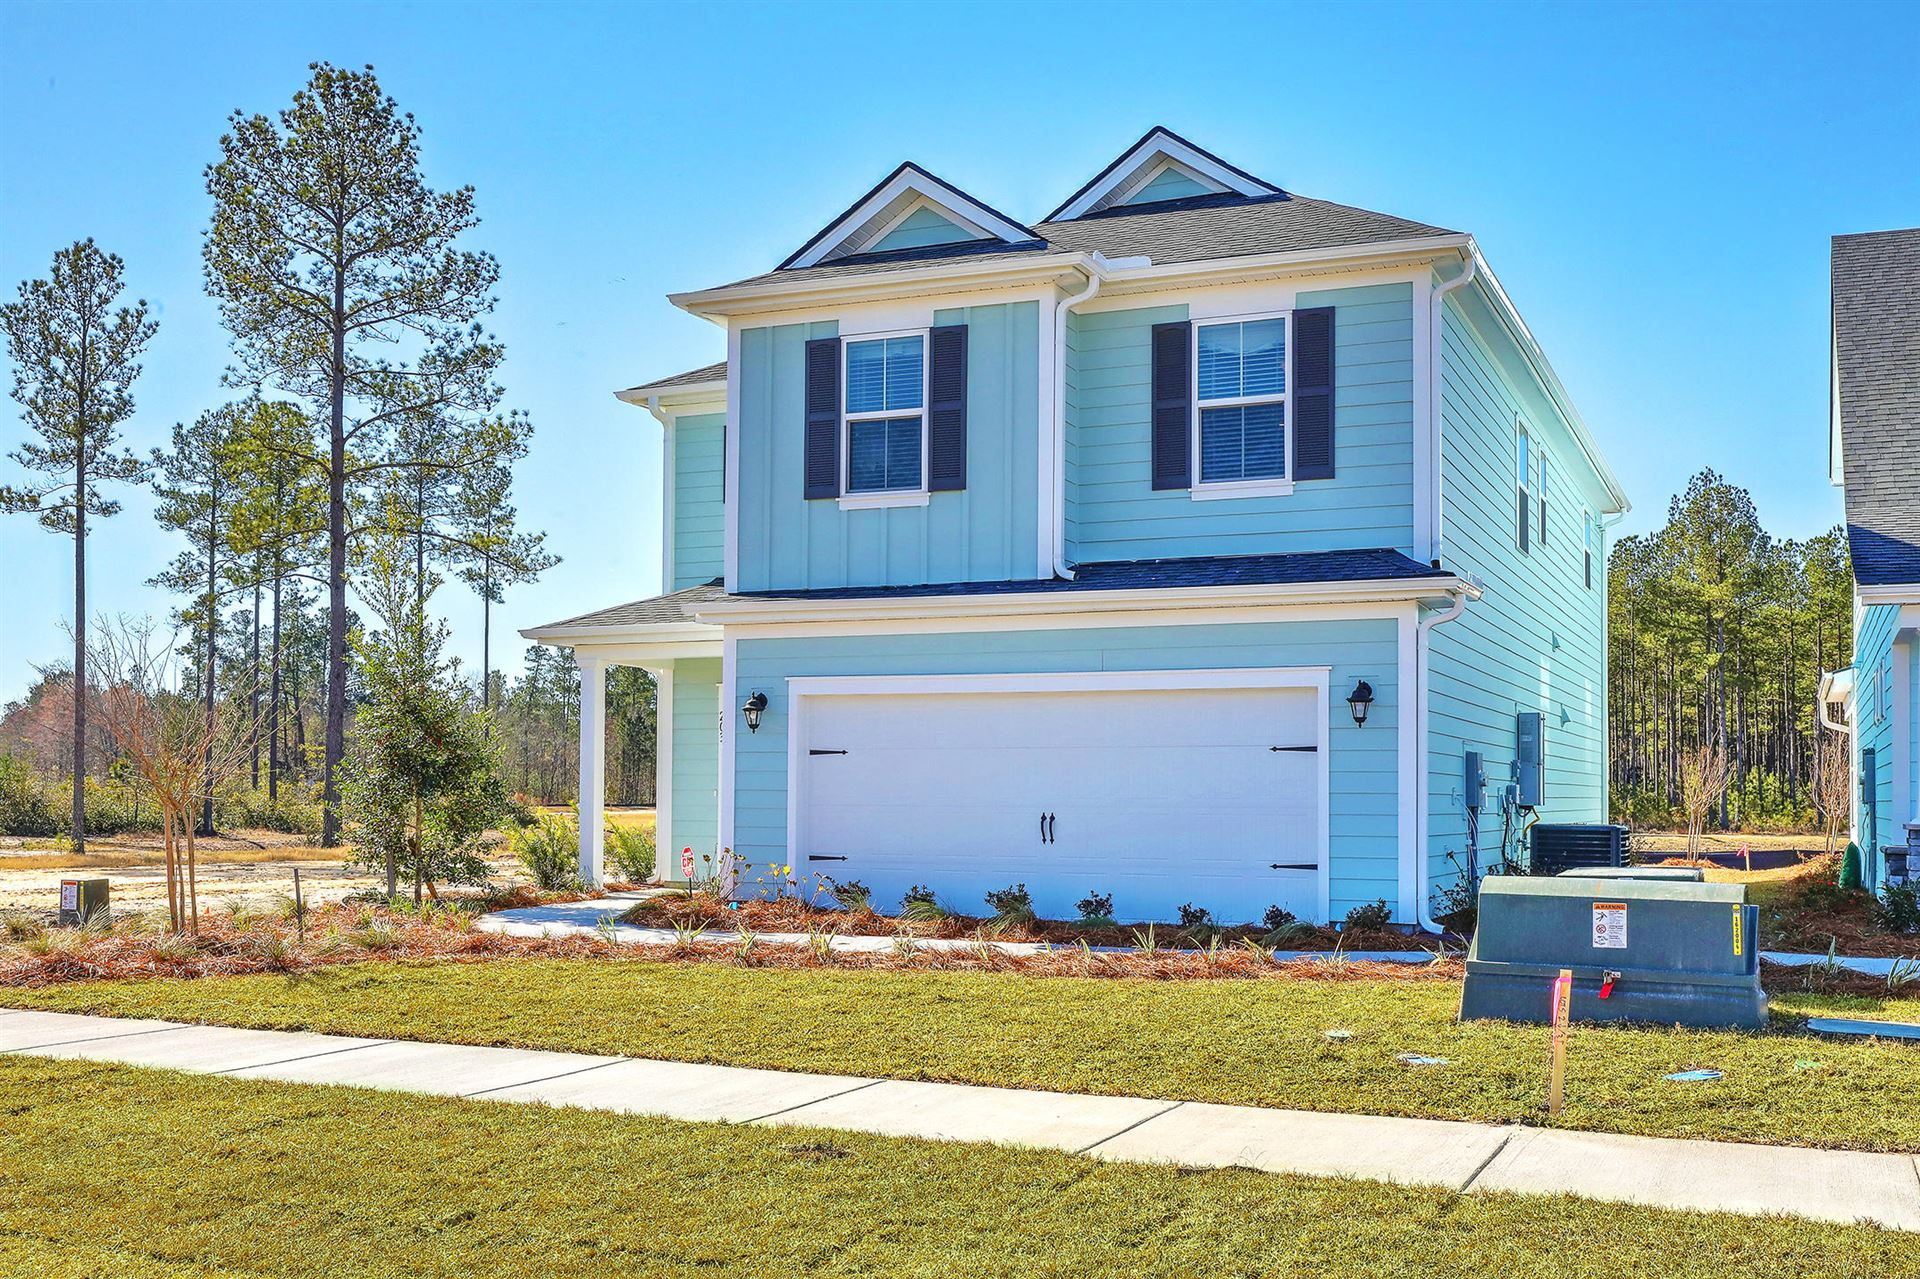 Photo of 255 Bering Lane, Summerville, SC 29486 (MLS # 21005154)